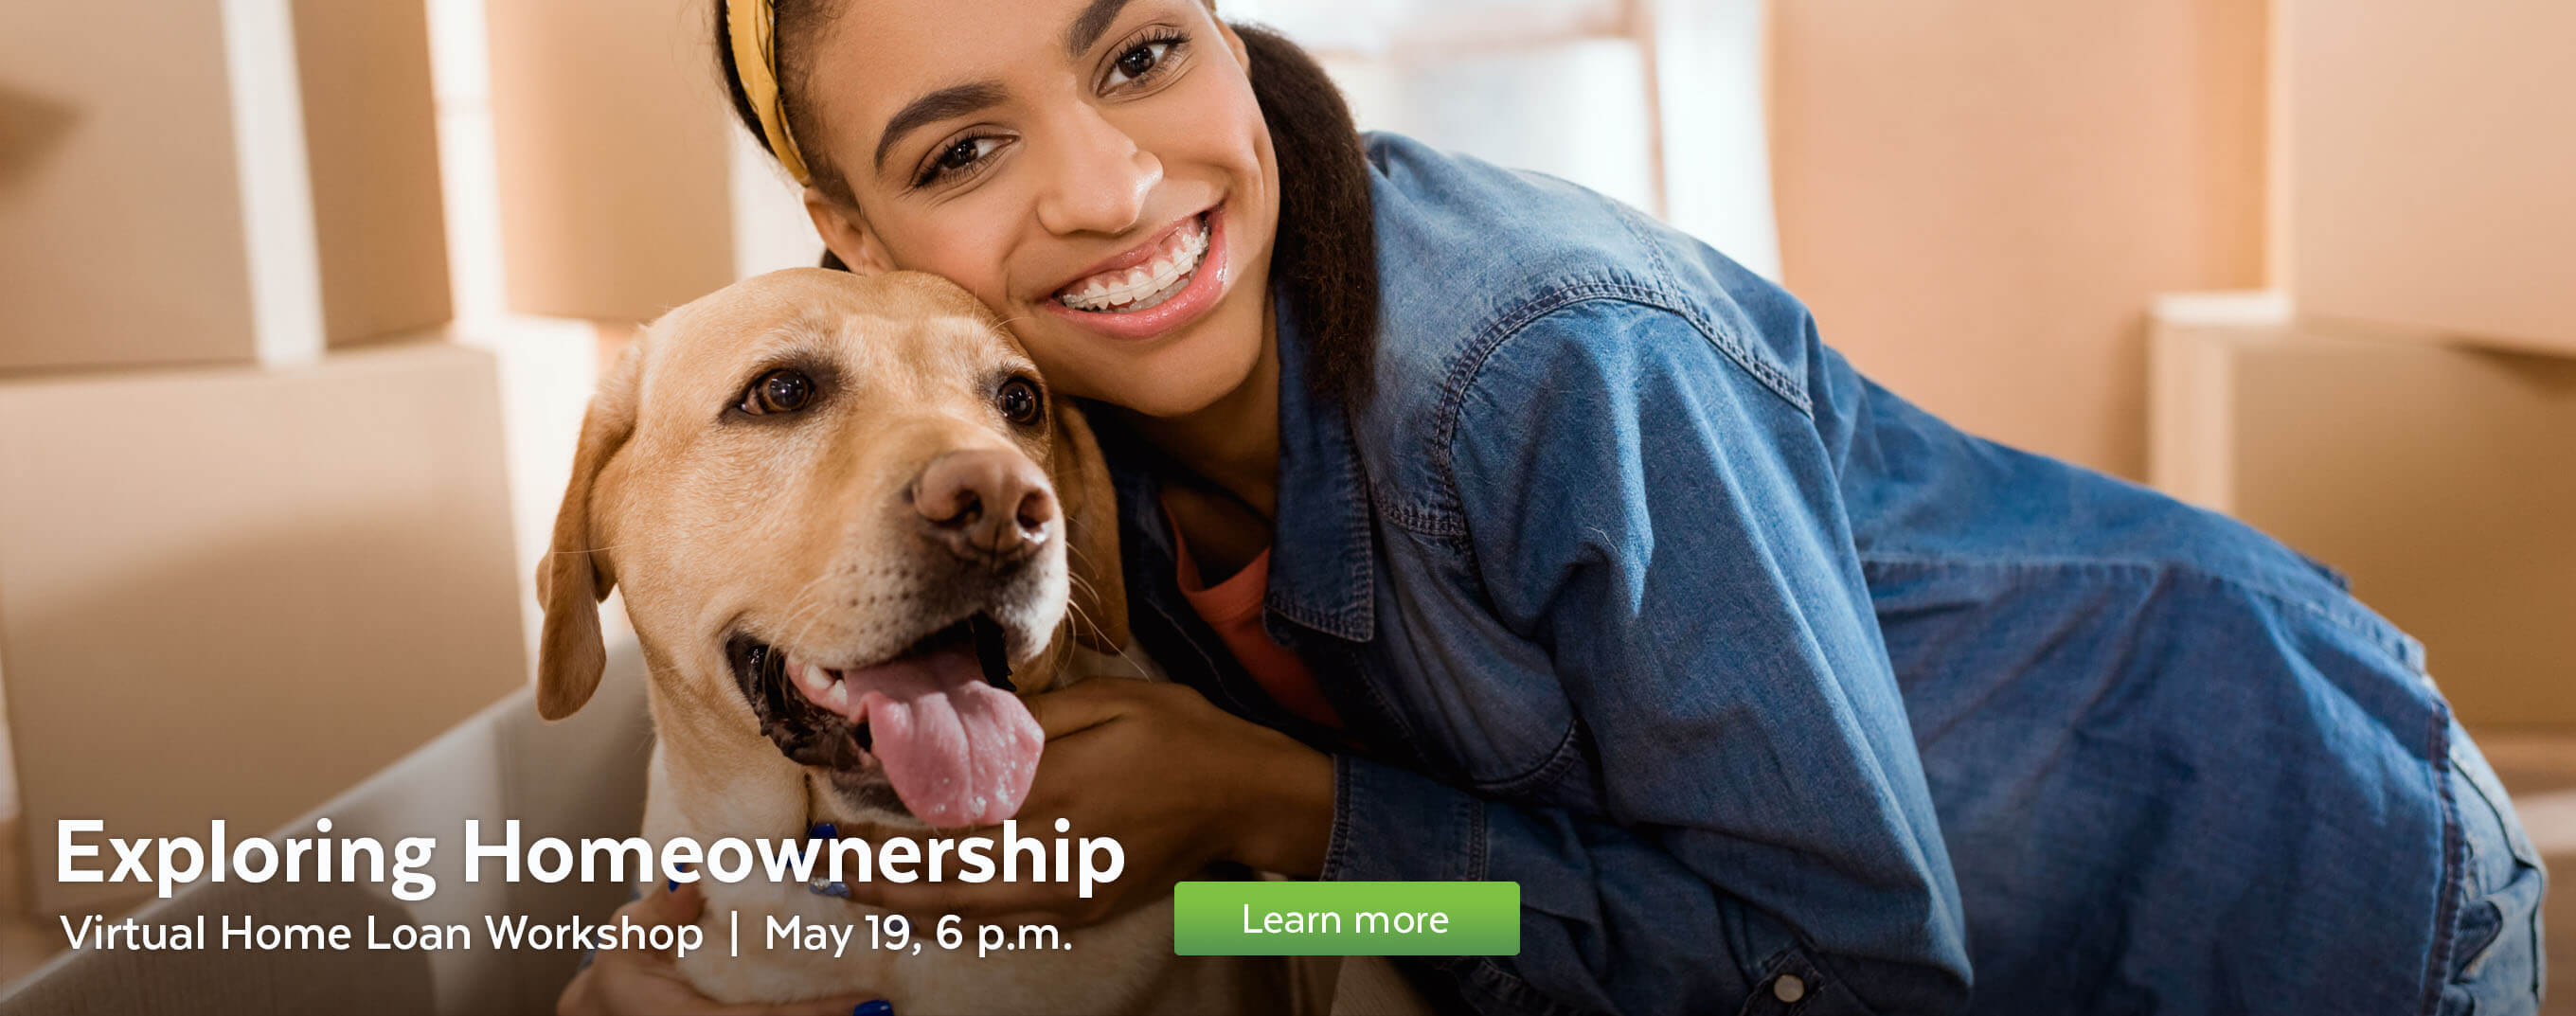 Attend a virtual Exploring Homeownership workshop on May 19.